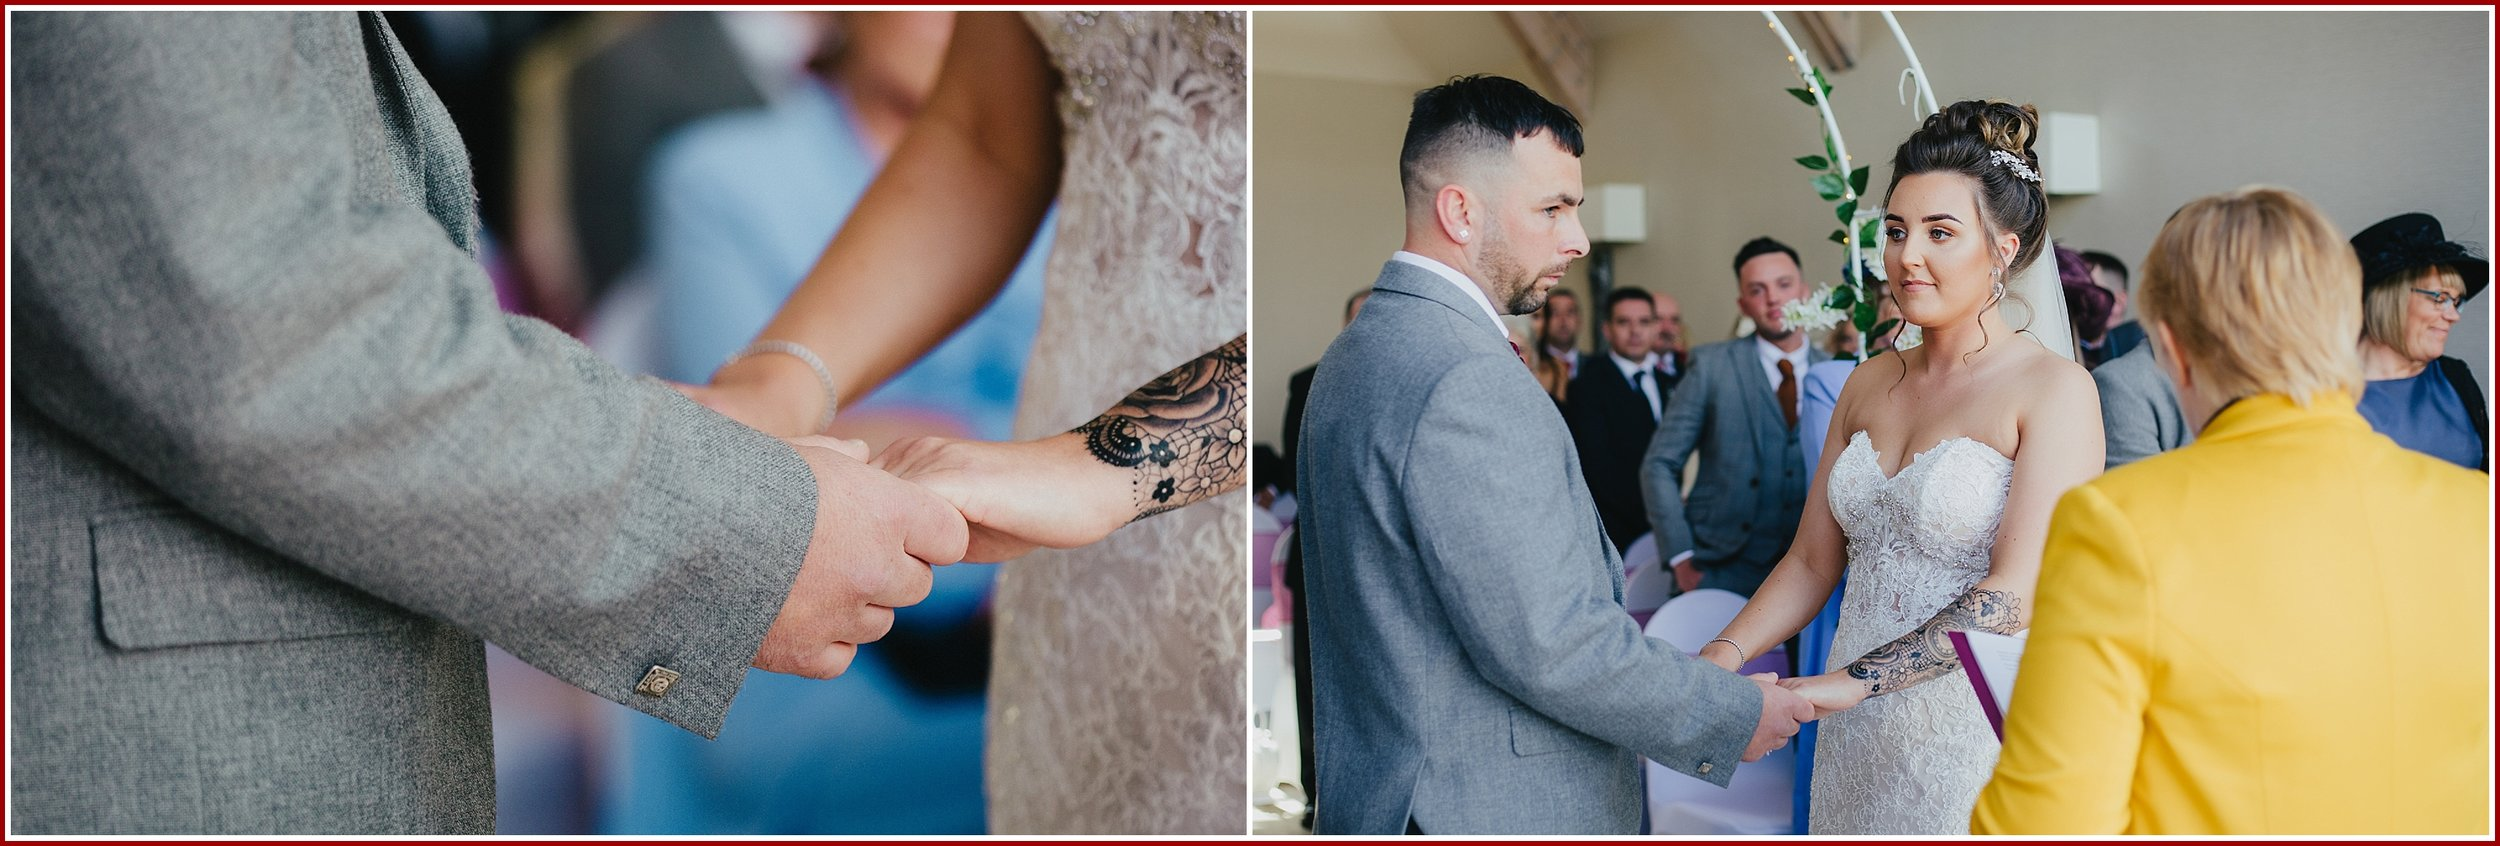 Kirsty_Brown_Wedding_Photography_0081.jpg